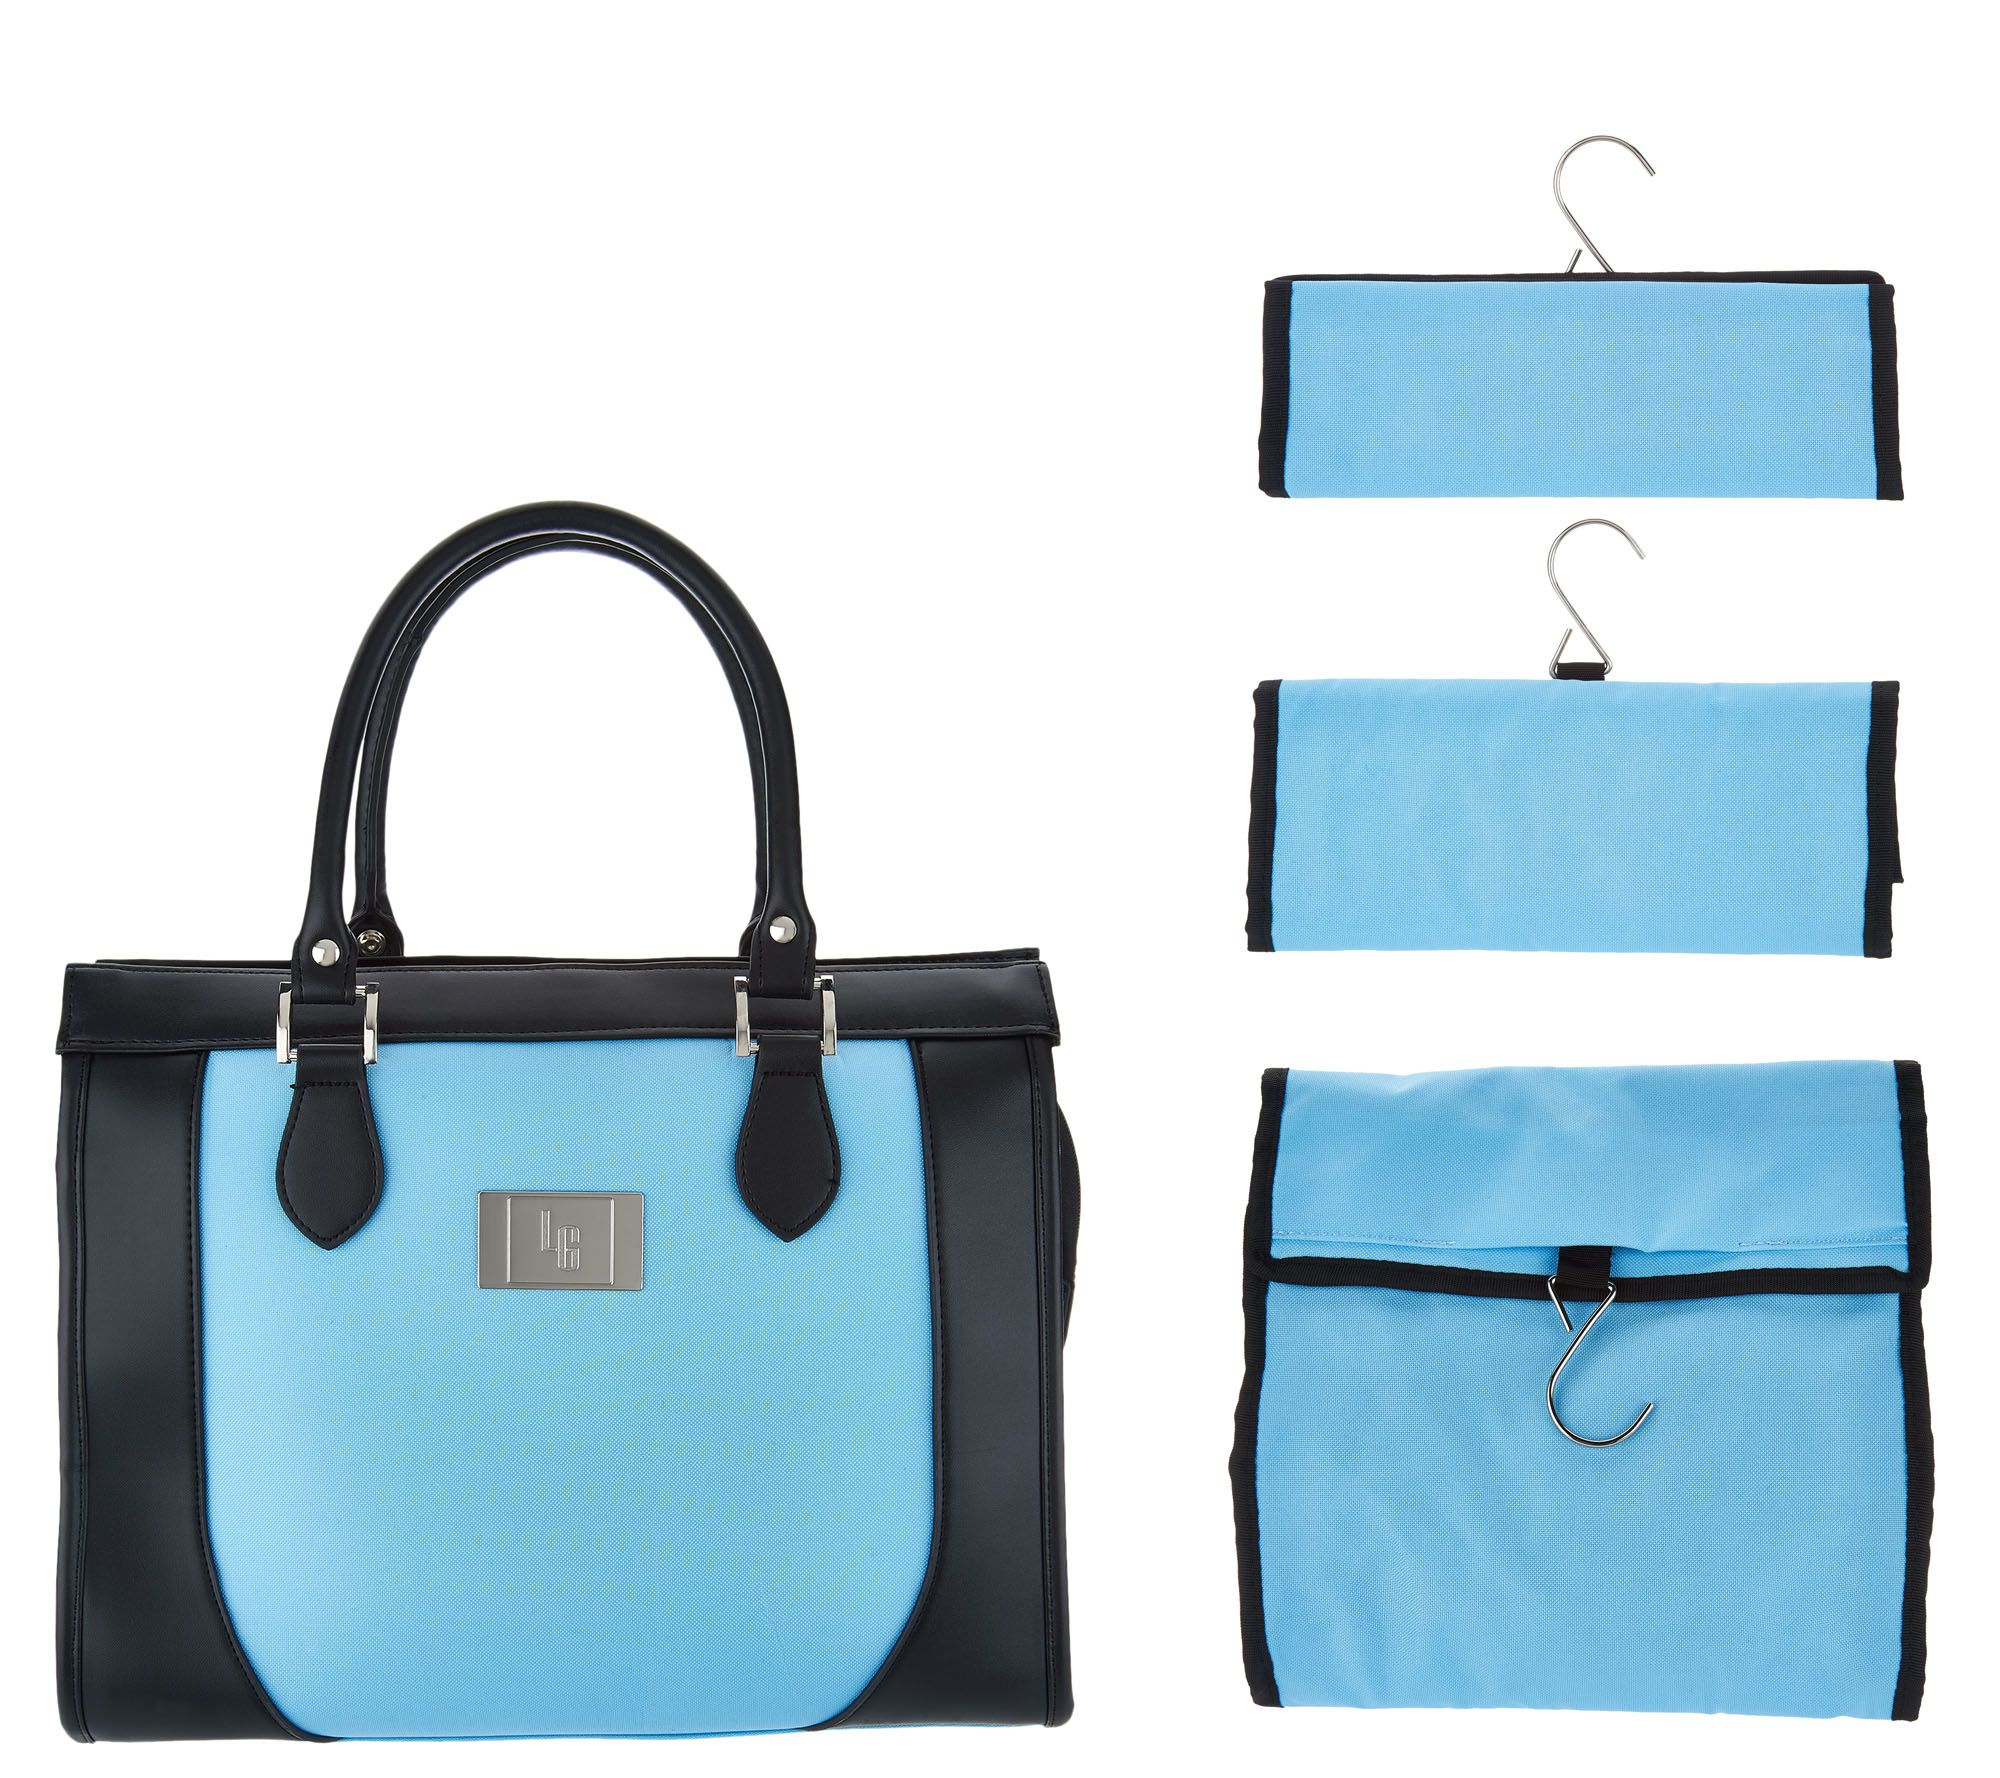 As Is Set of 3 Travel Organizers with Tote by Lori Greiner QVCcom